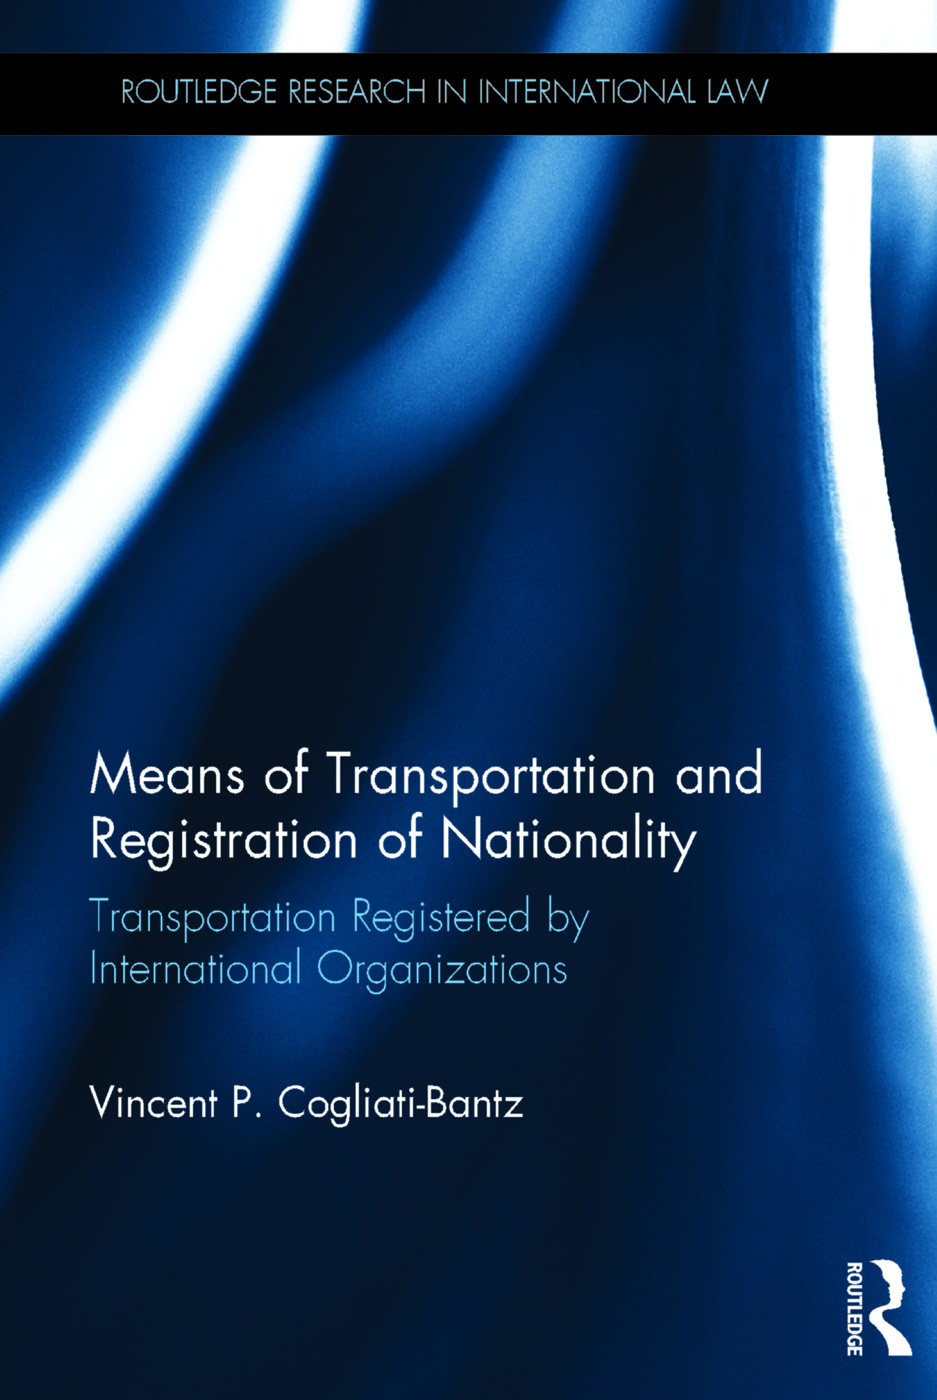 Source of the right to register in the internal order of international organizations